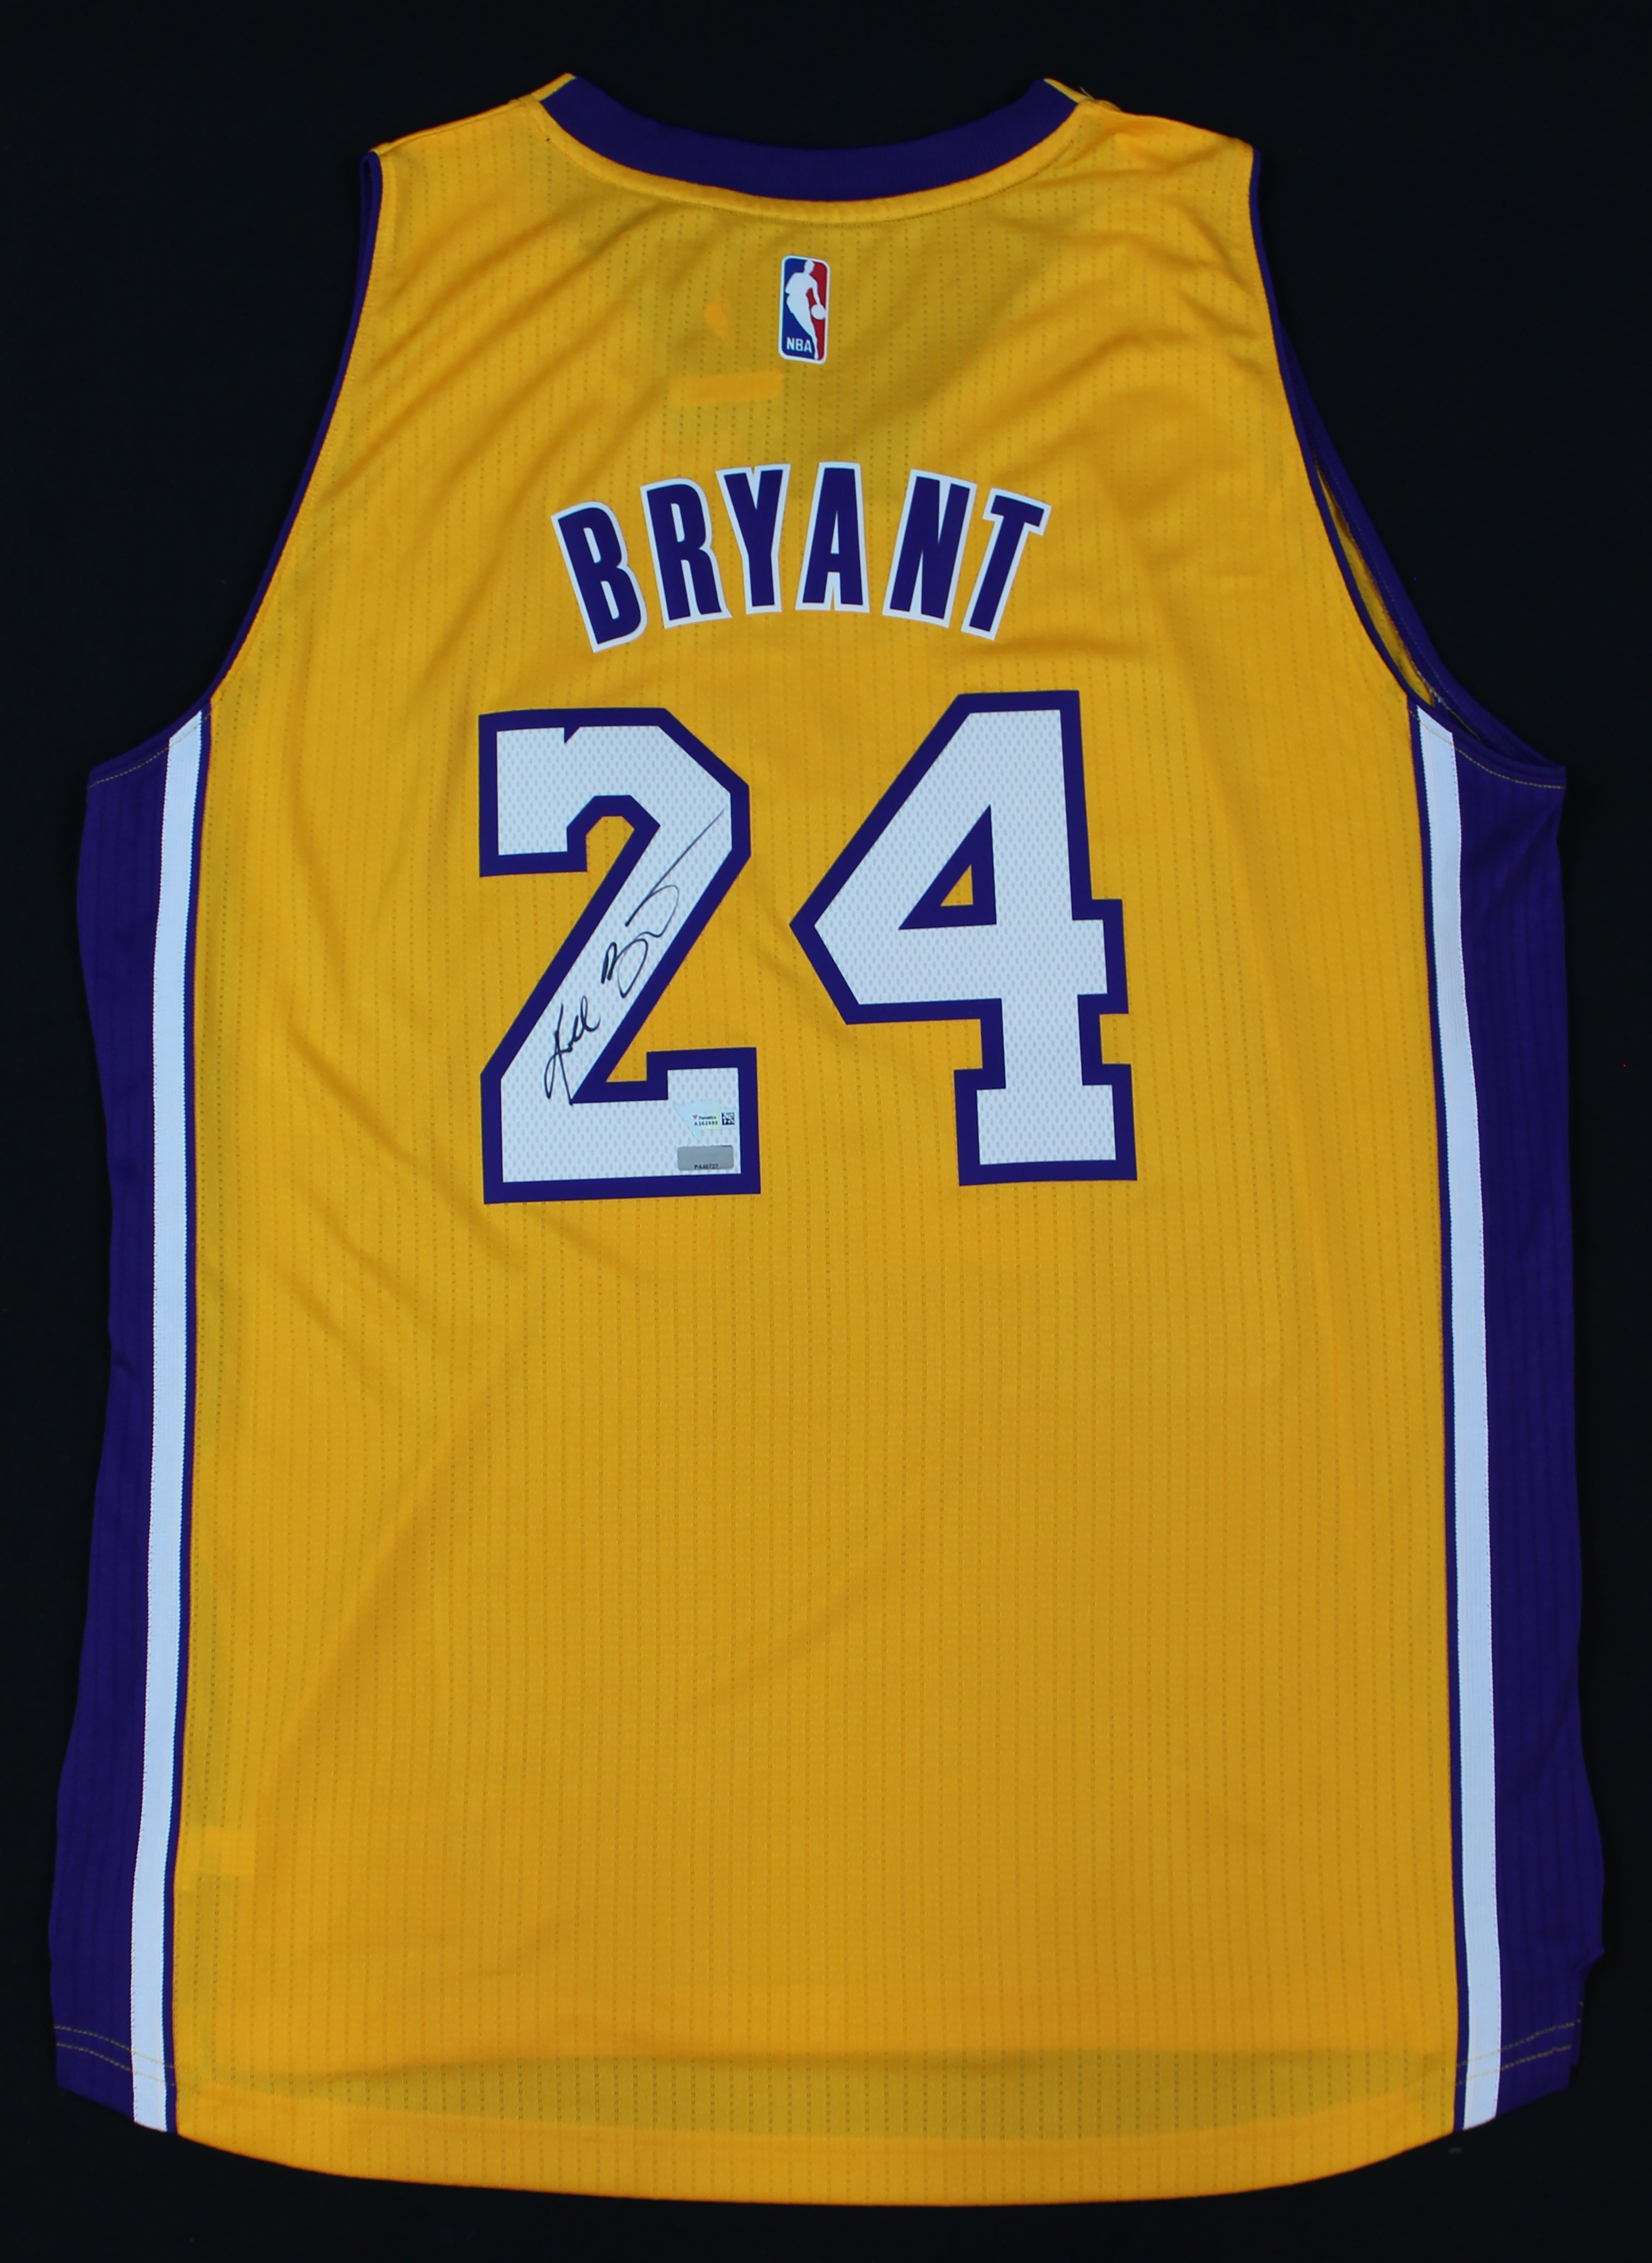 new product 8f1e7 f99fd Details about Kobe Bryant Signed Los Angeles Lakers Yellow Adidas #24  Jersey Panini COA